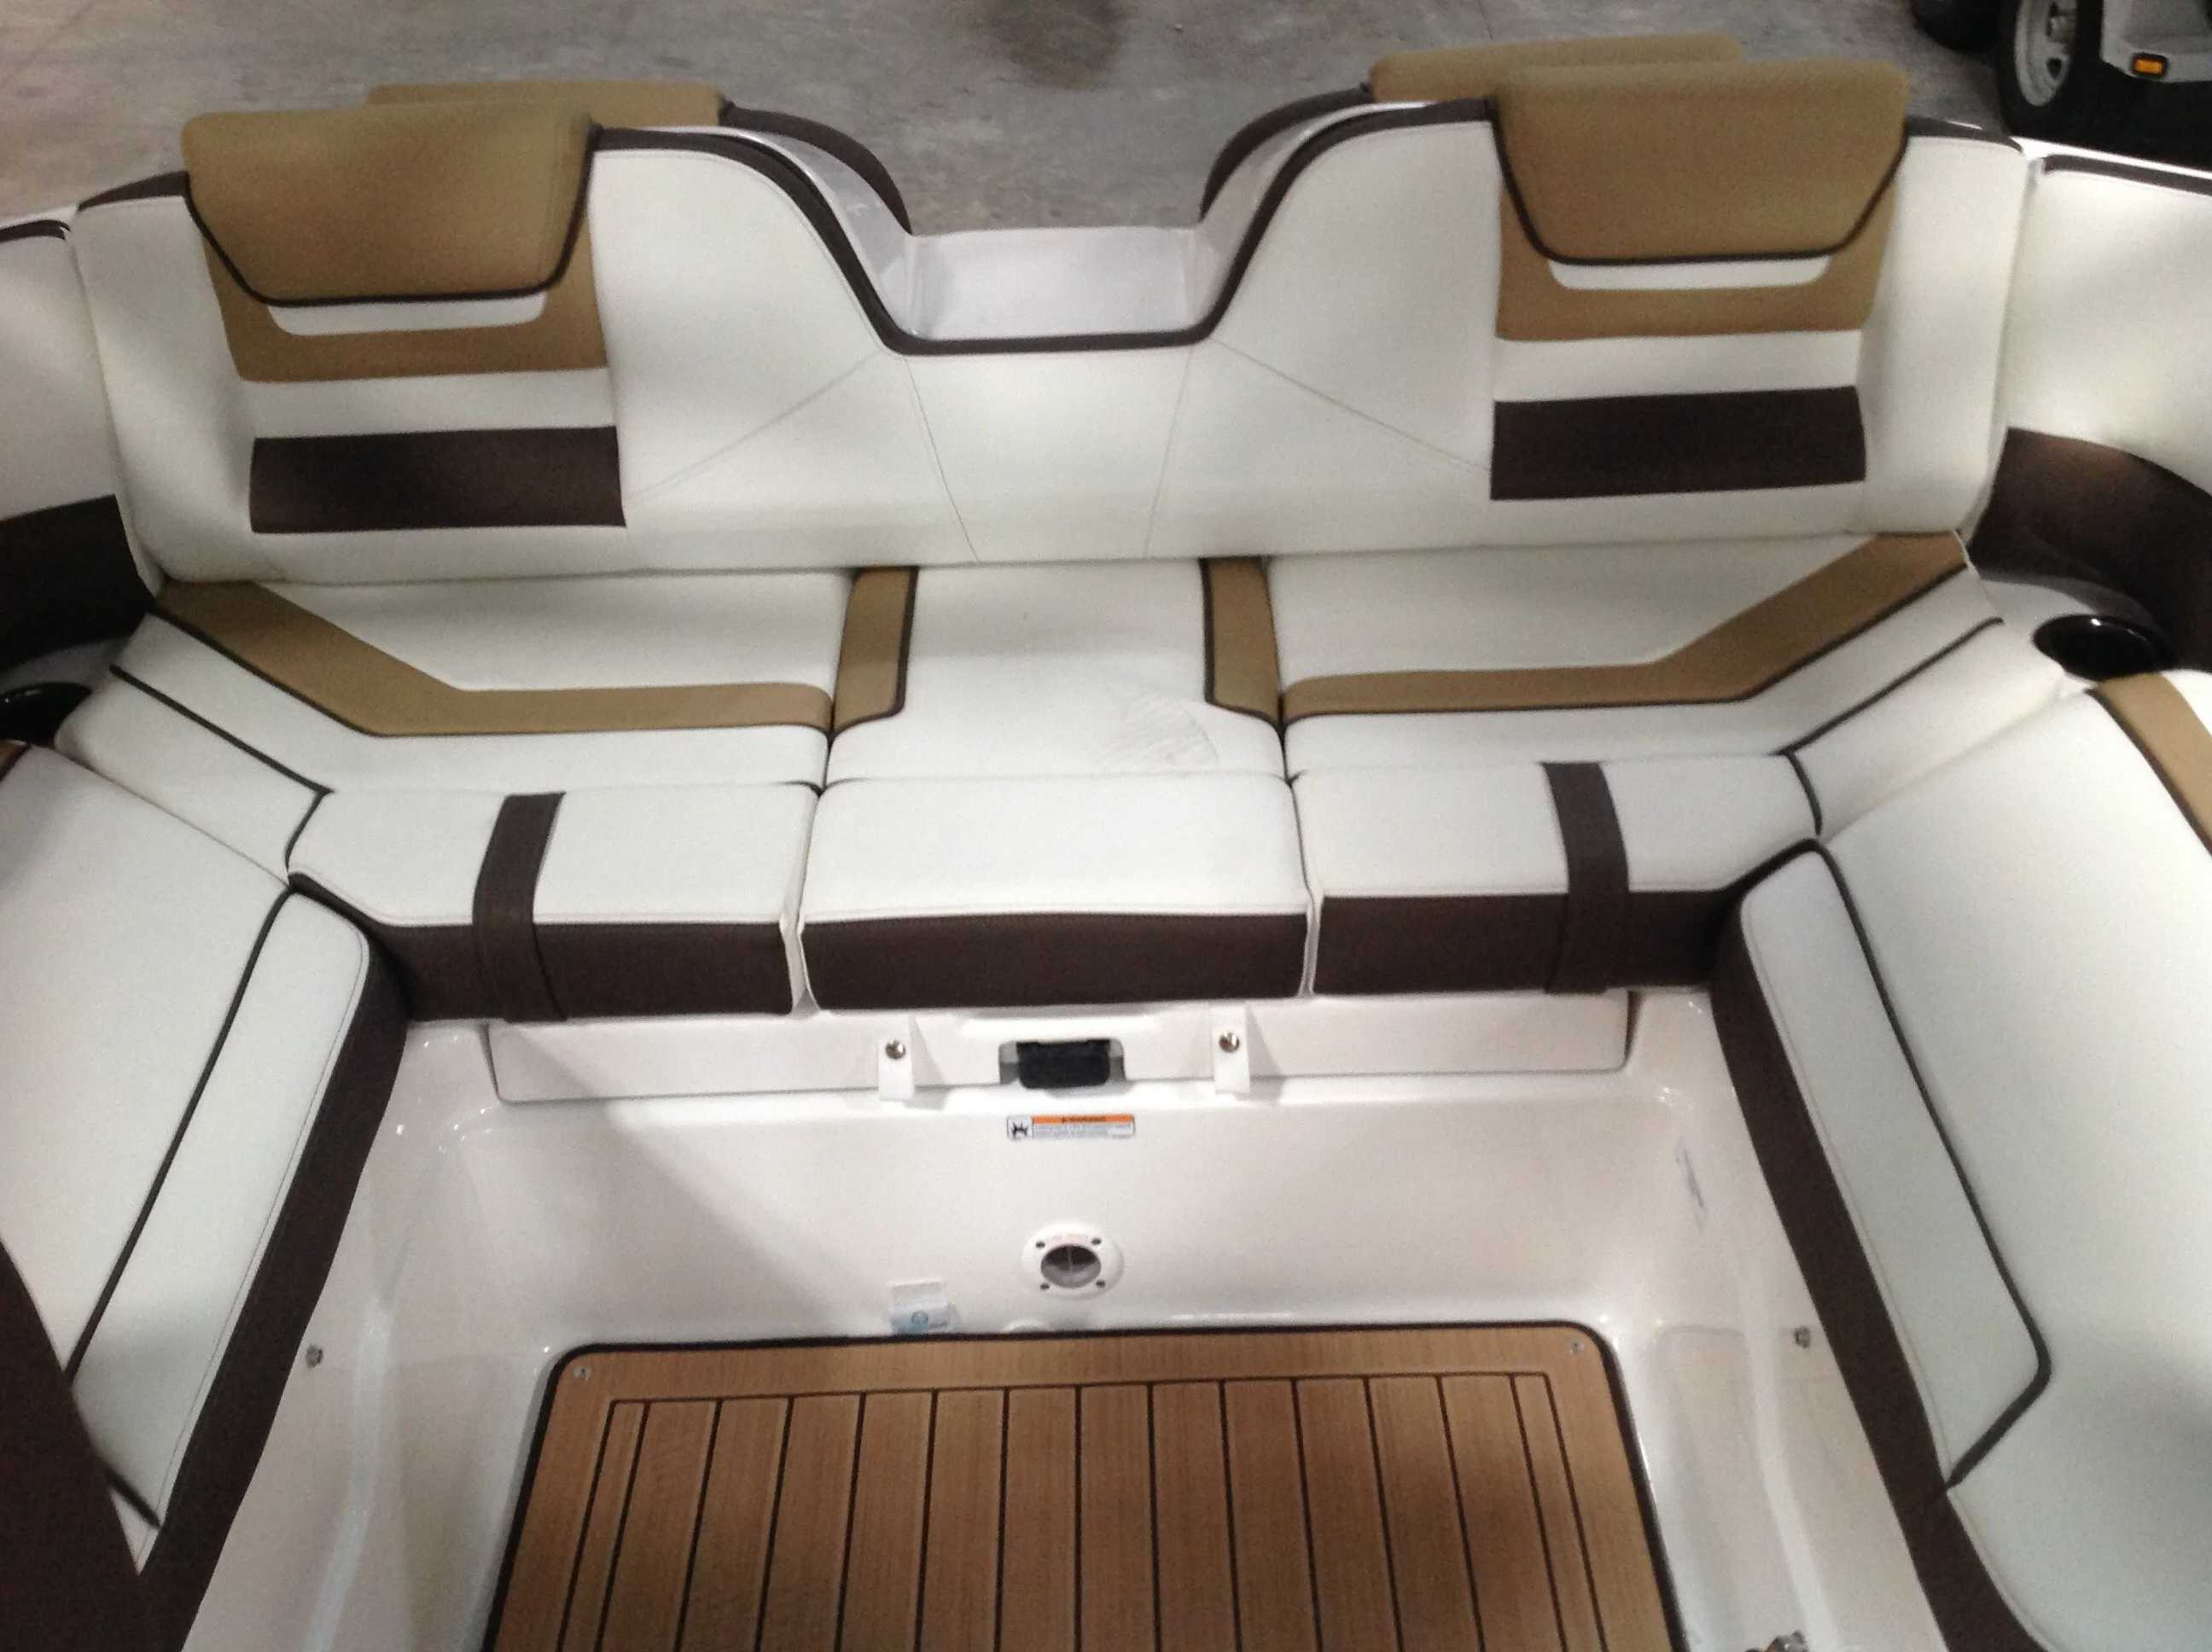 2021 Yamaha boat for sale, model of the boat is 212 & Image # 10 of 15